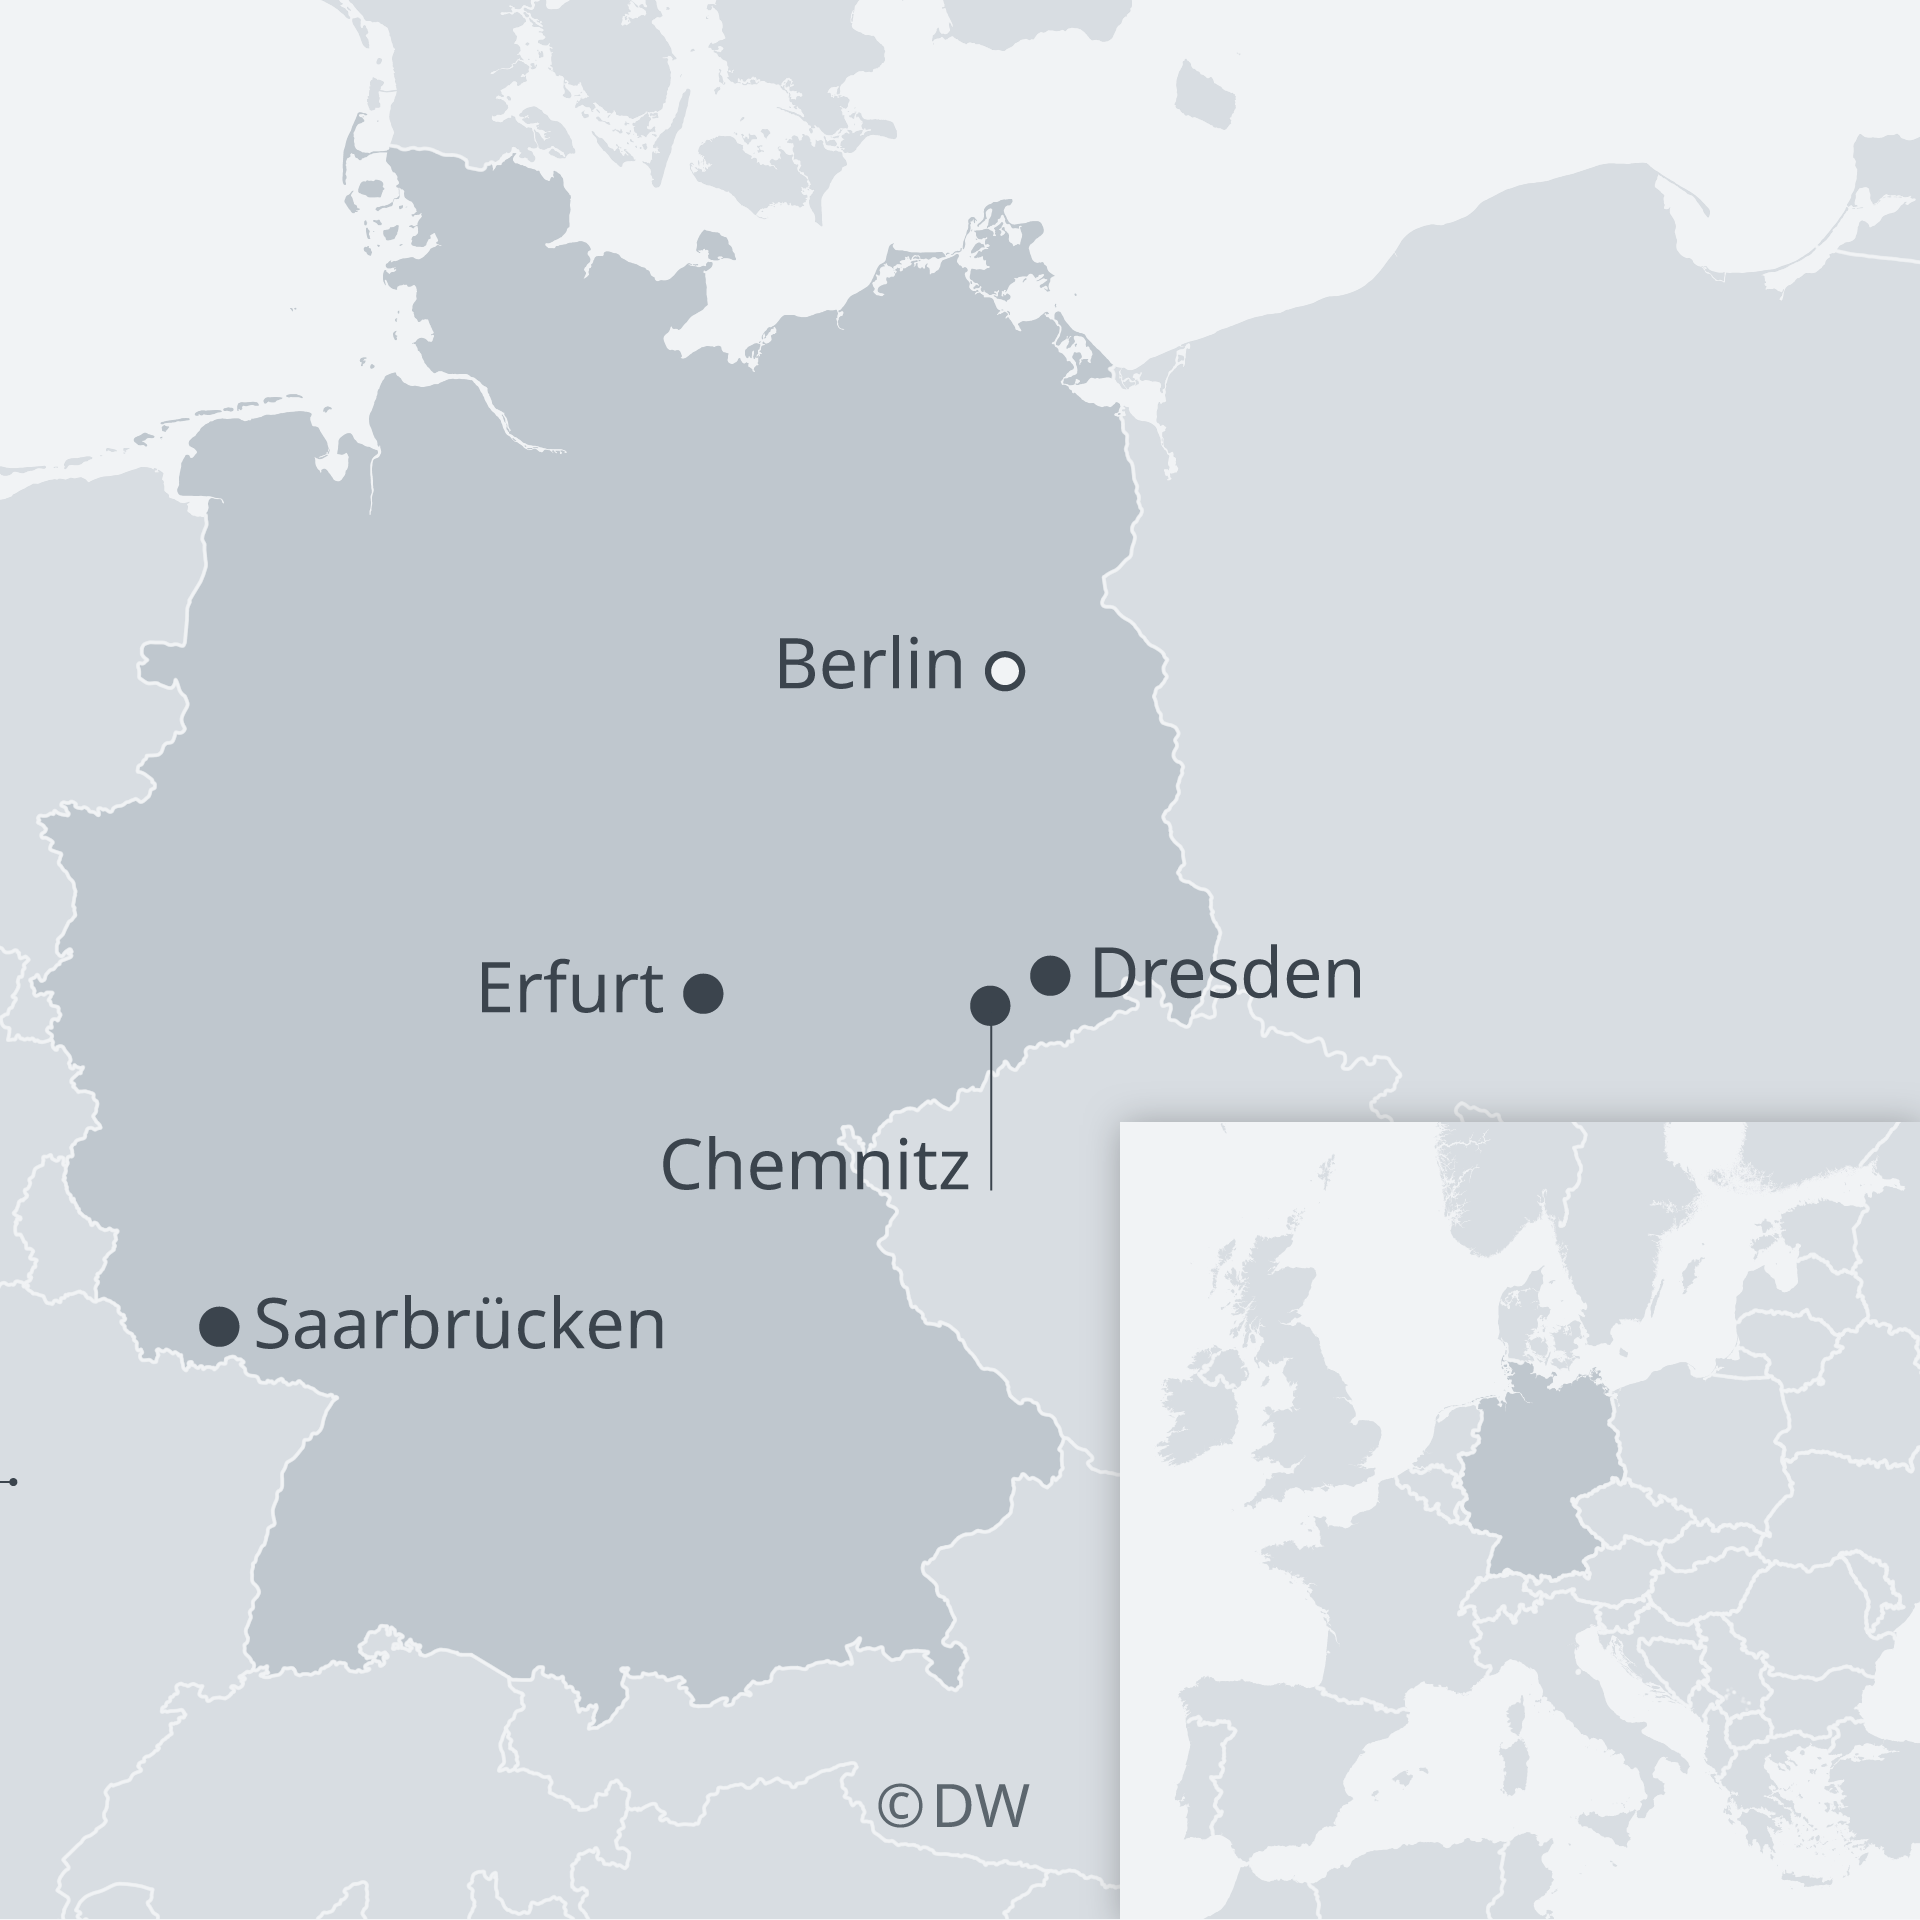 A map of Germany showing Saarbrücken, Chemnitz, Dresden, Erfurt and Berlin